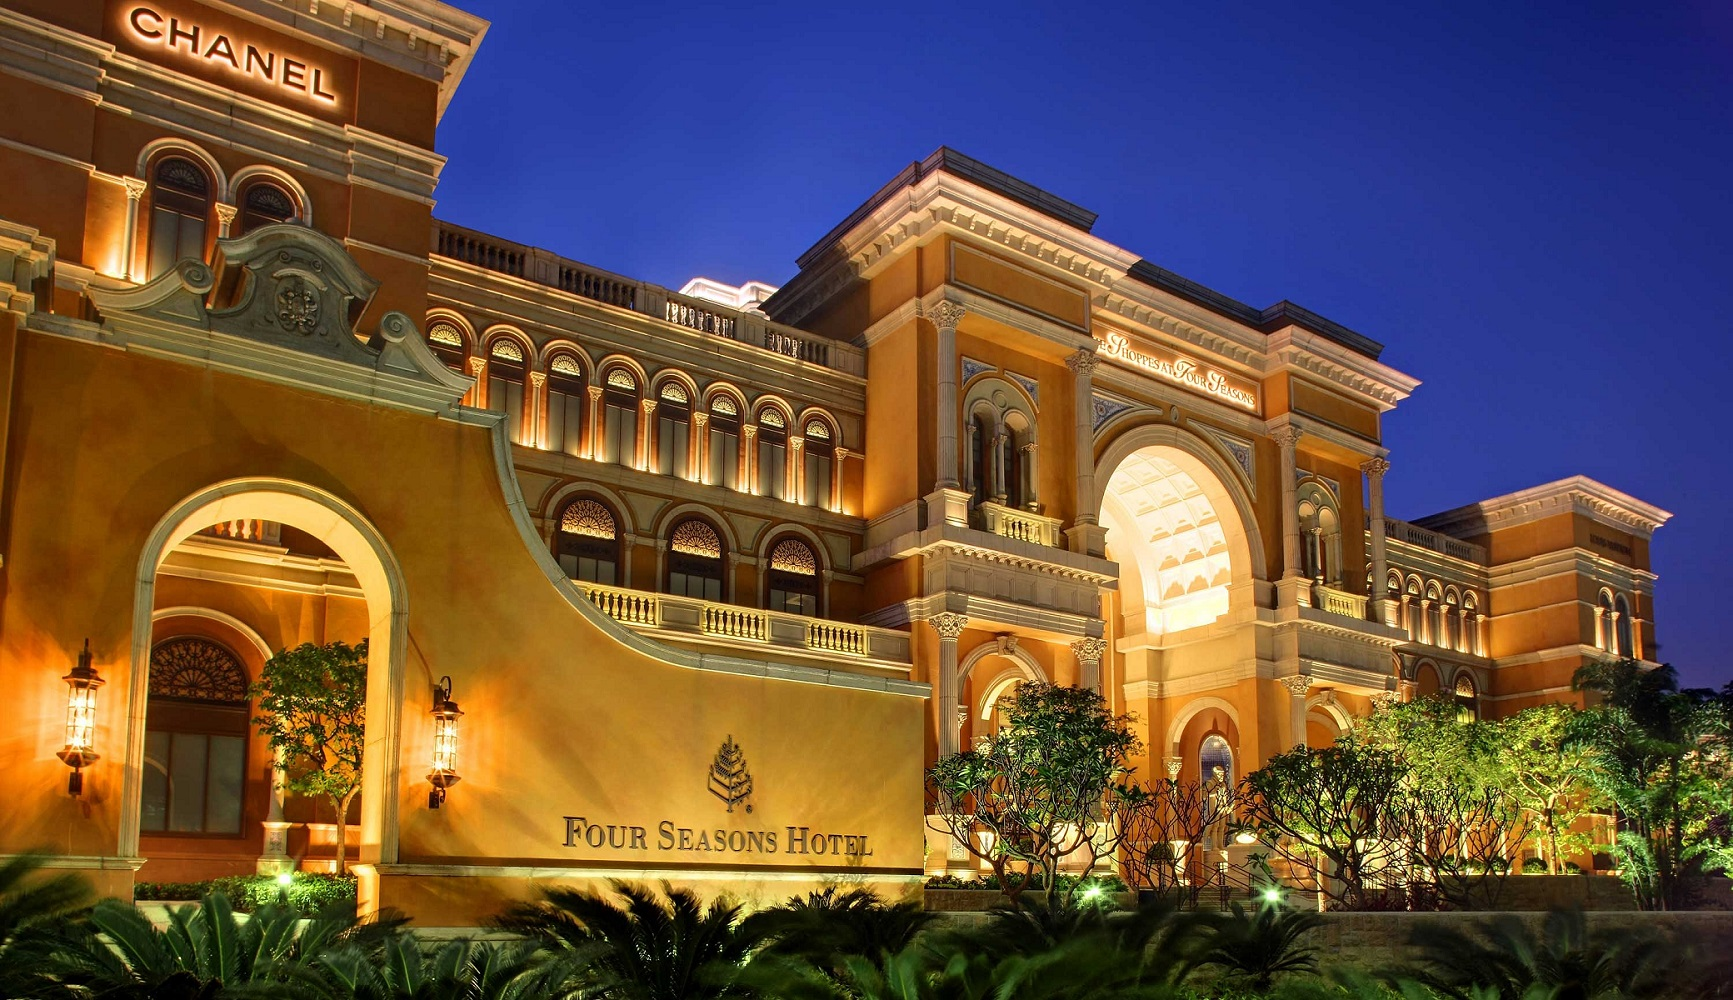 Top Hotels In Macau - Explore The Best Casinos